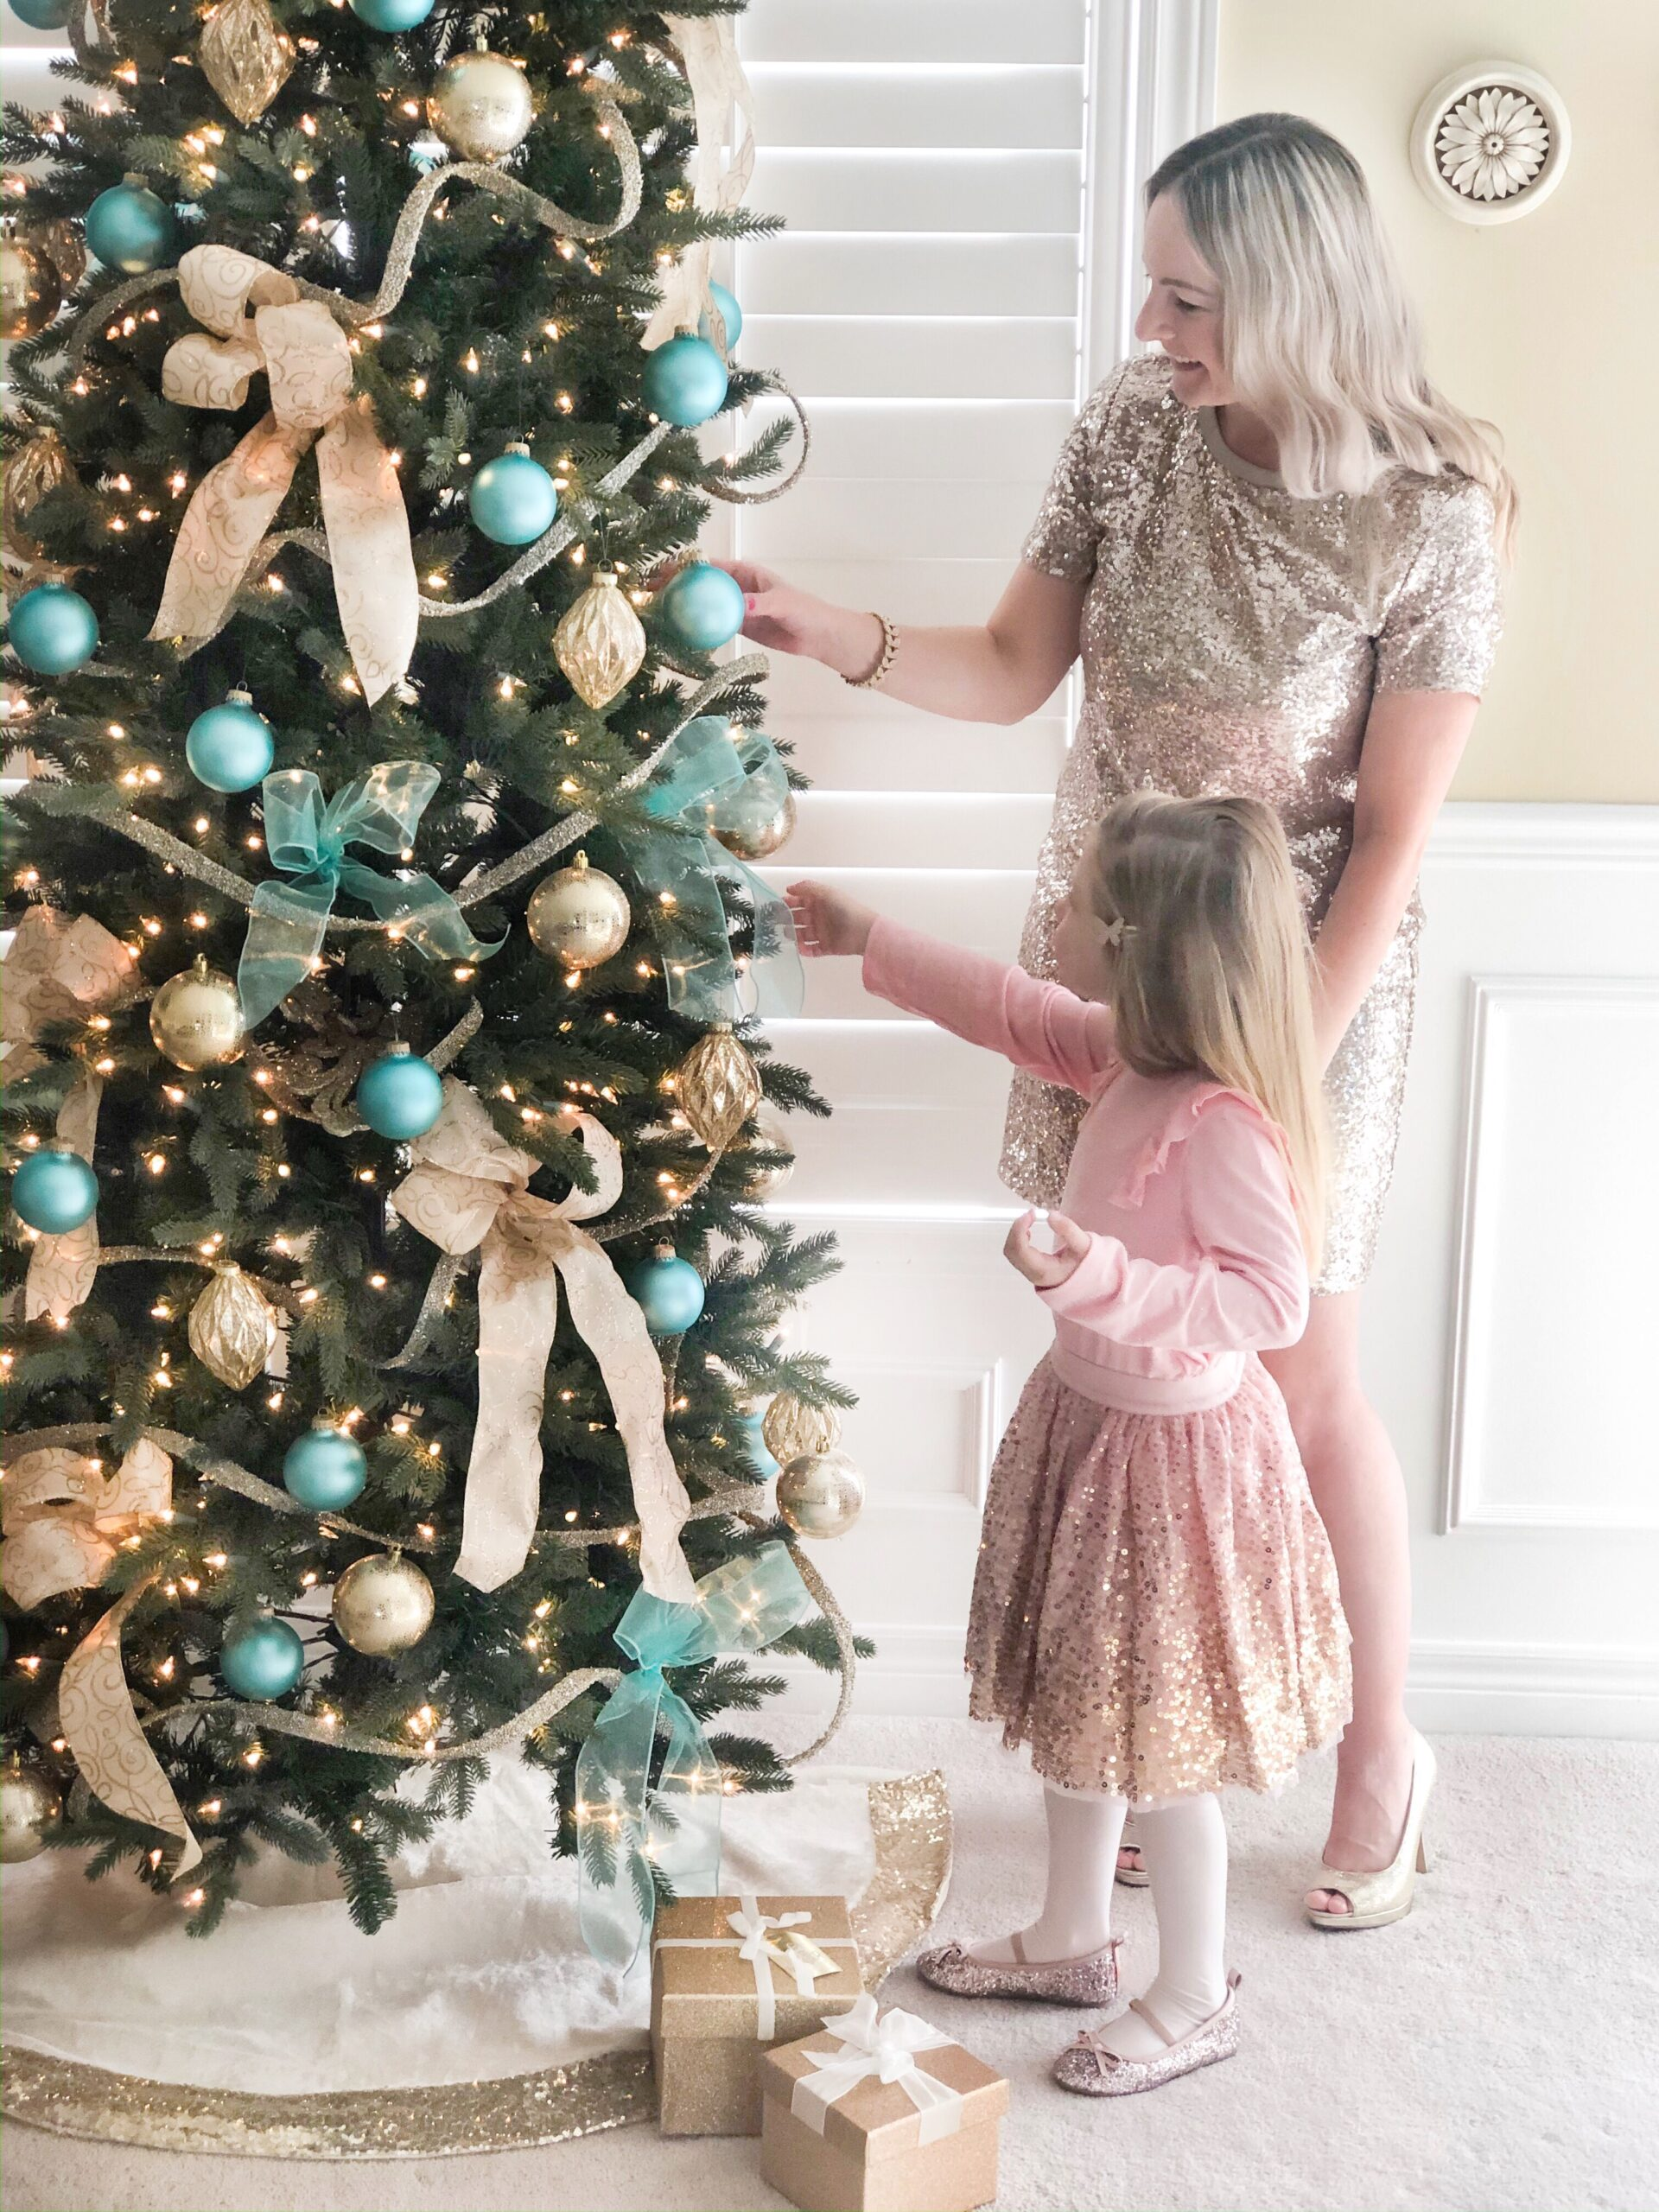 Mother and Daughter holiday looks from Joe Fresh on Livin' Life with Style